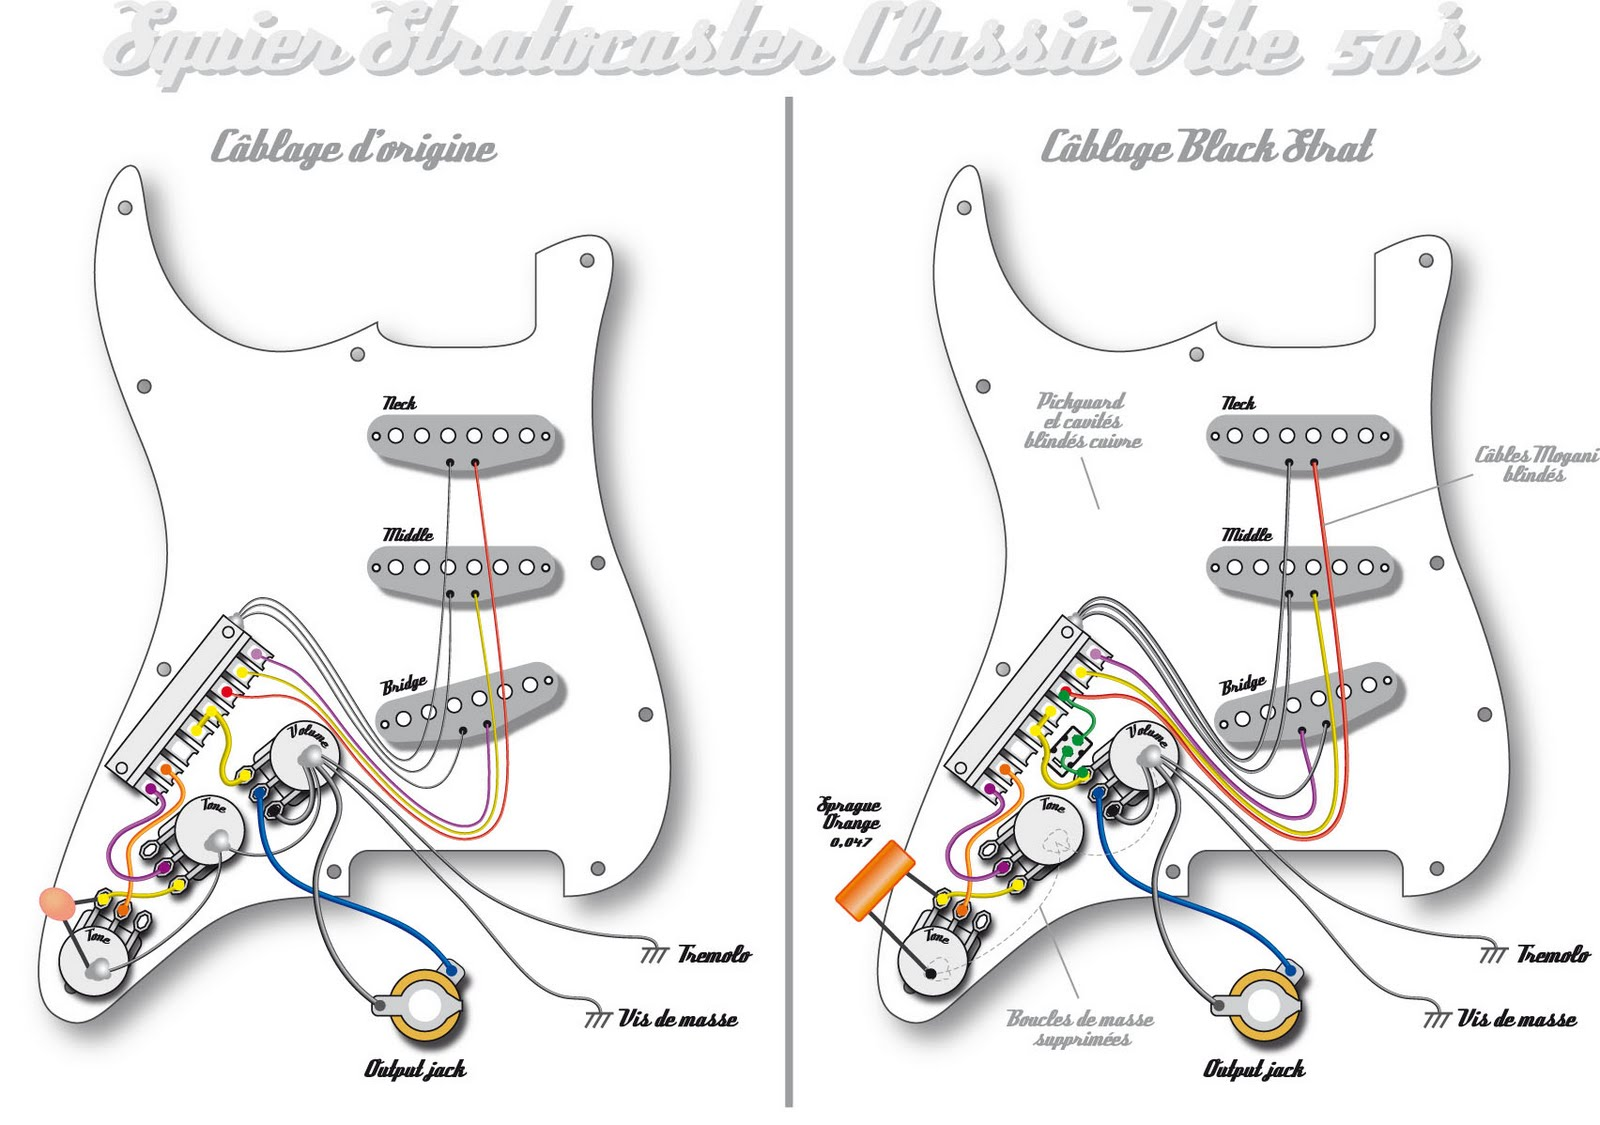 David Gilmour Black Strat Wiring Diagram Schematic Diagrams Fat The Fender Hss Vintage Stratocaster